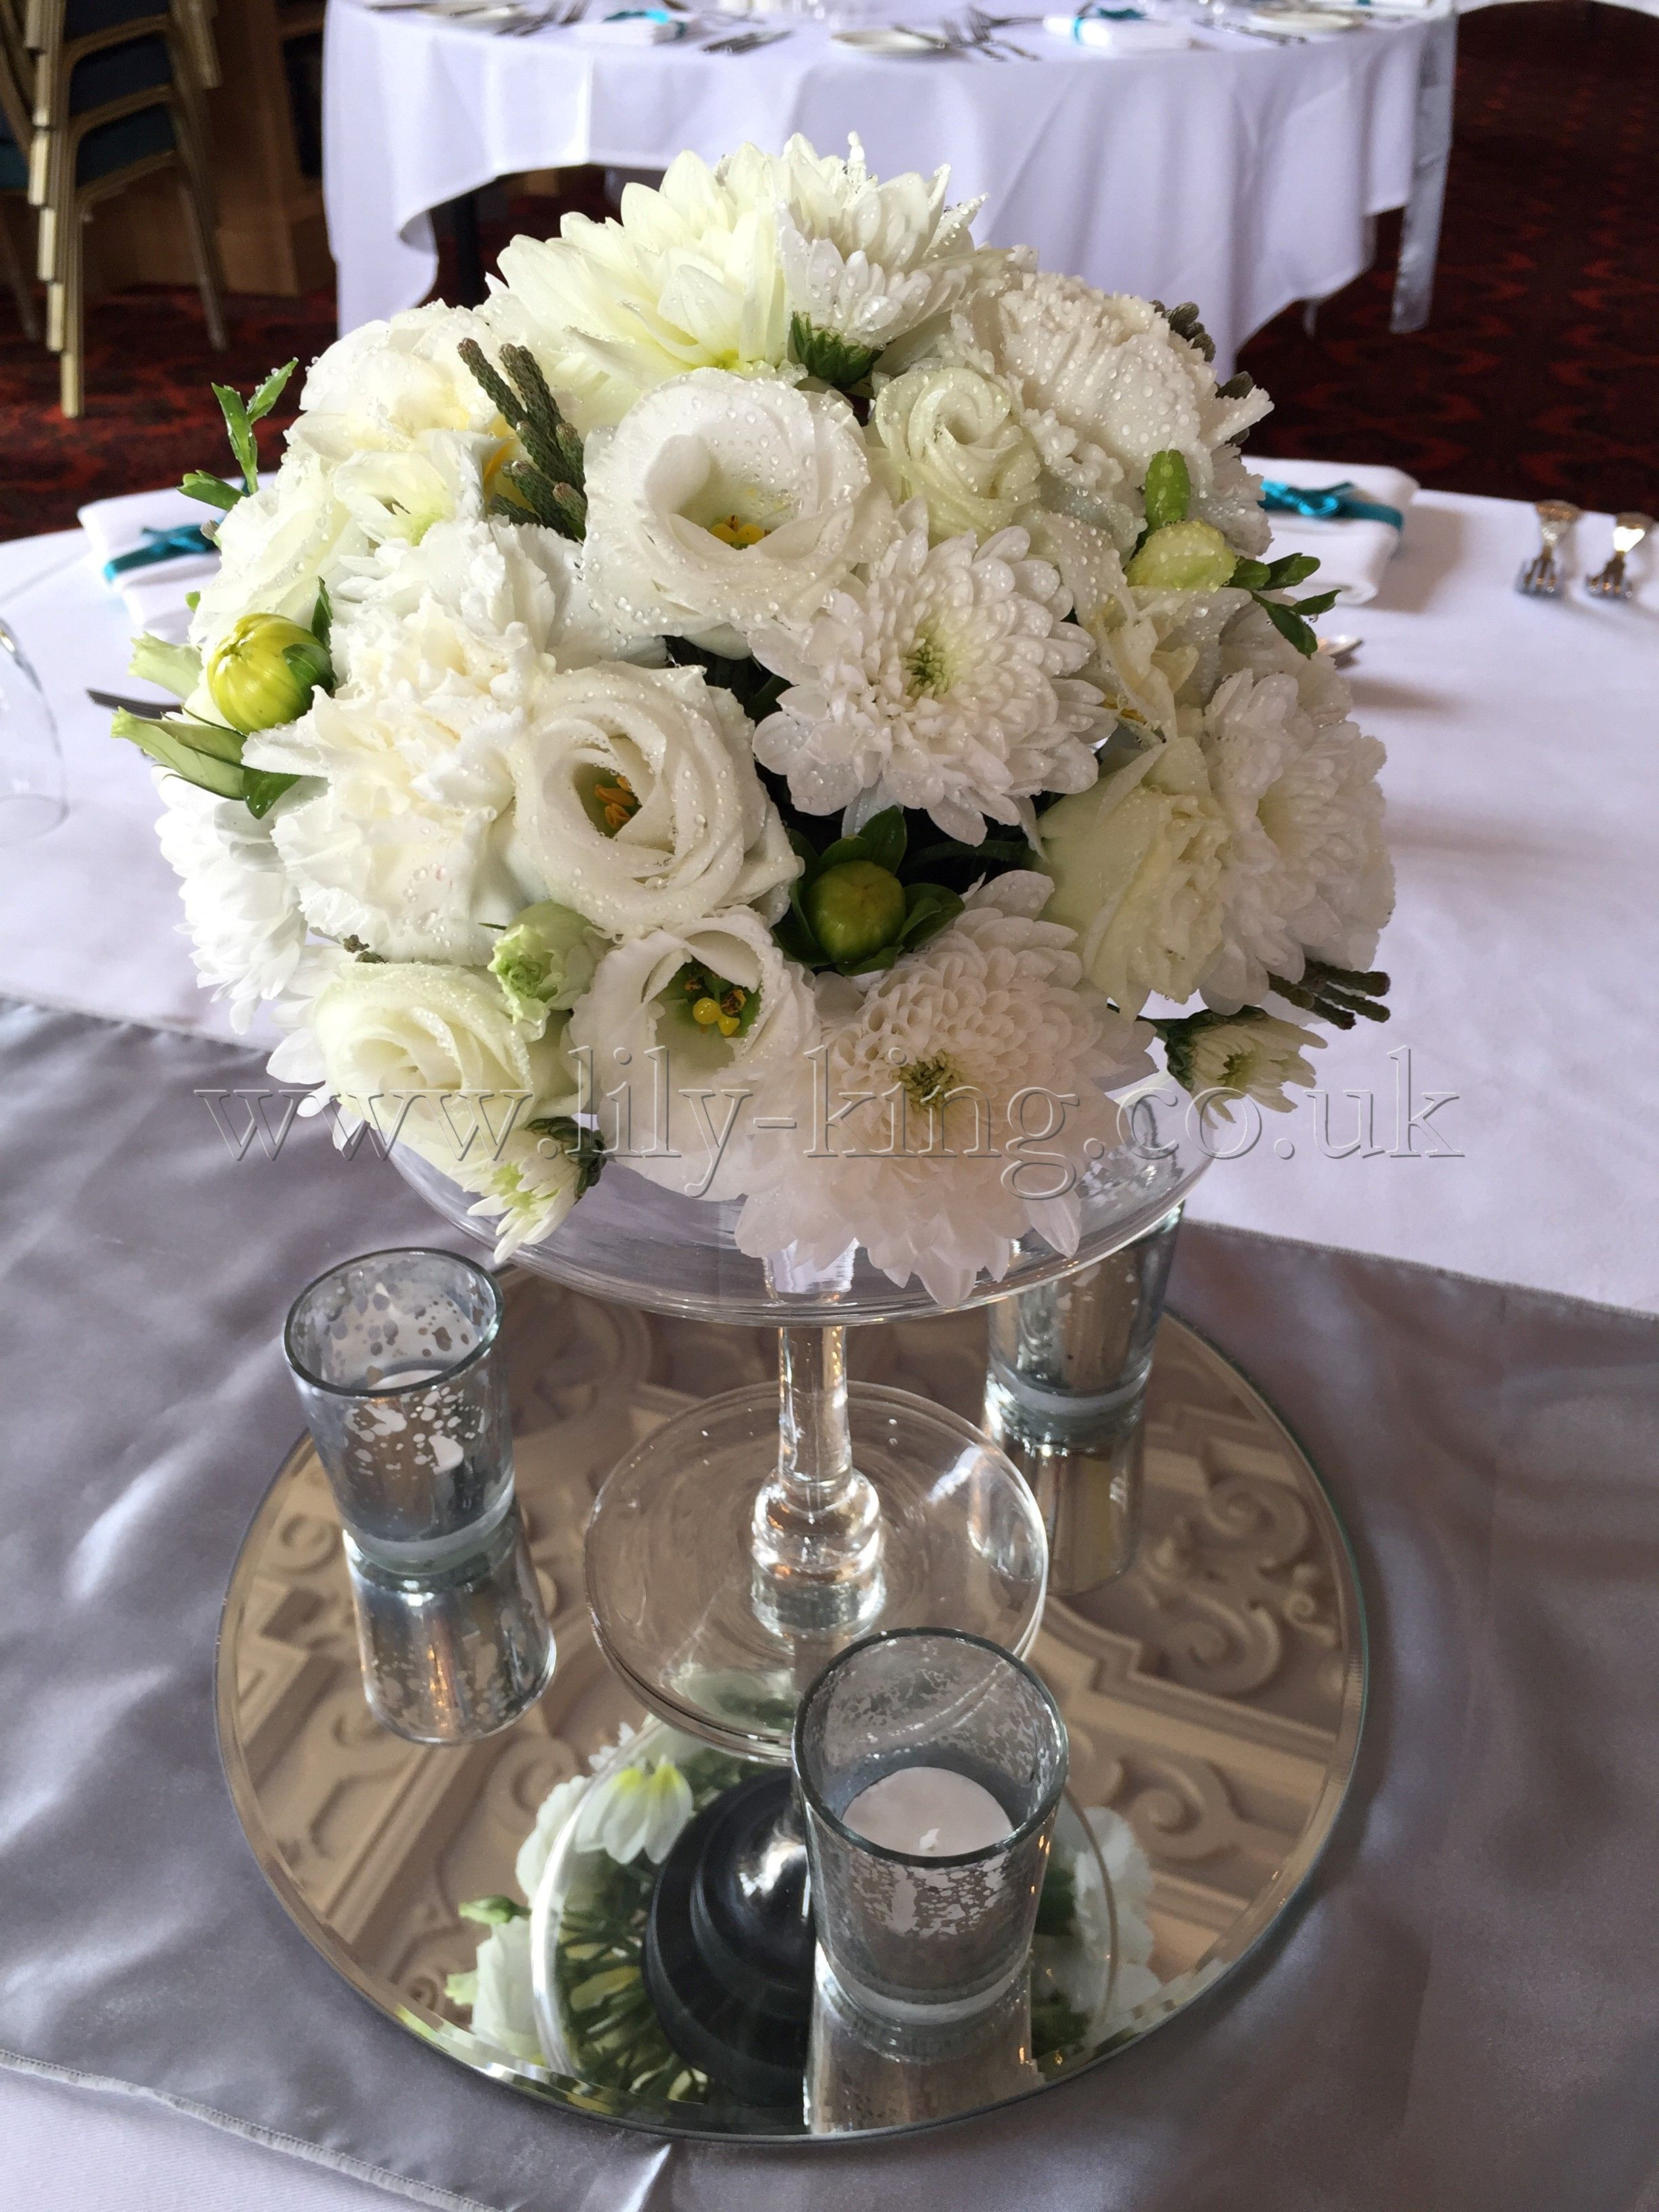 White Flower Ball Arrangement Of Lisianthus And Dahlias By Lily